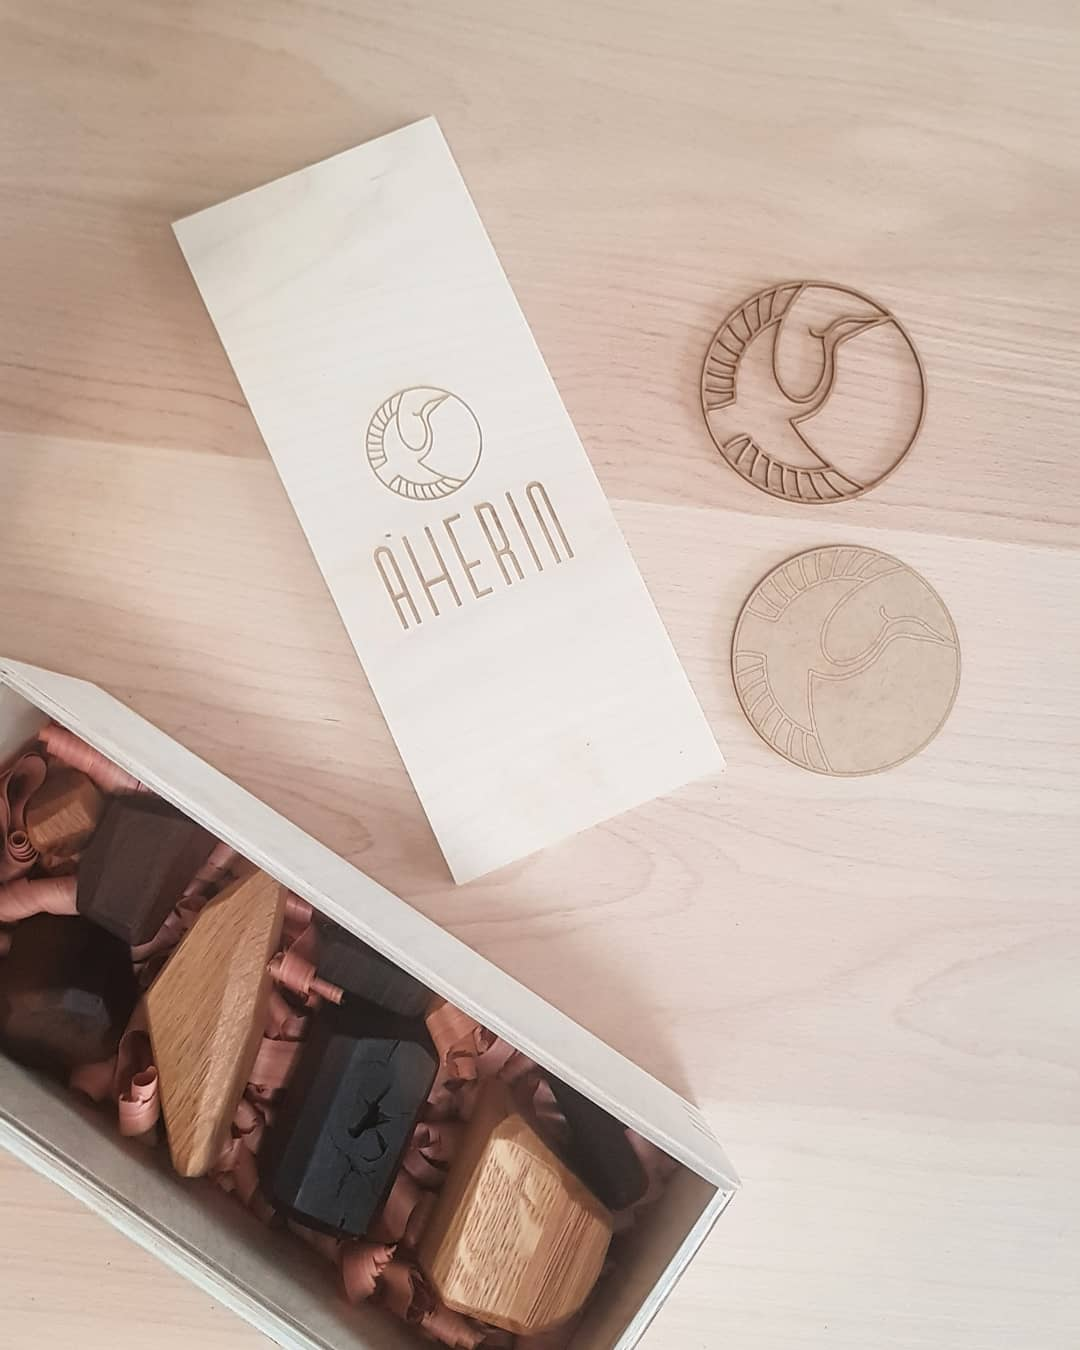 Aherin laser engraved wooden box: Cairn by Aherin, wooden balancing stones